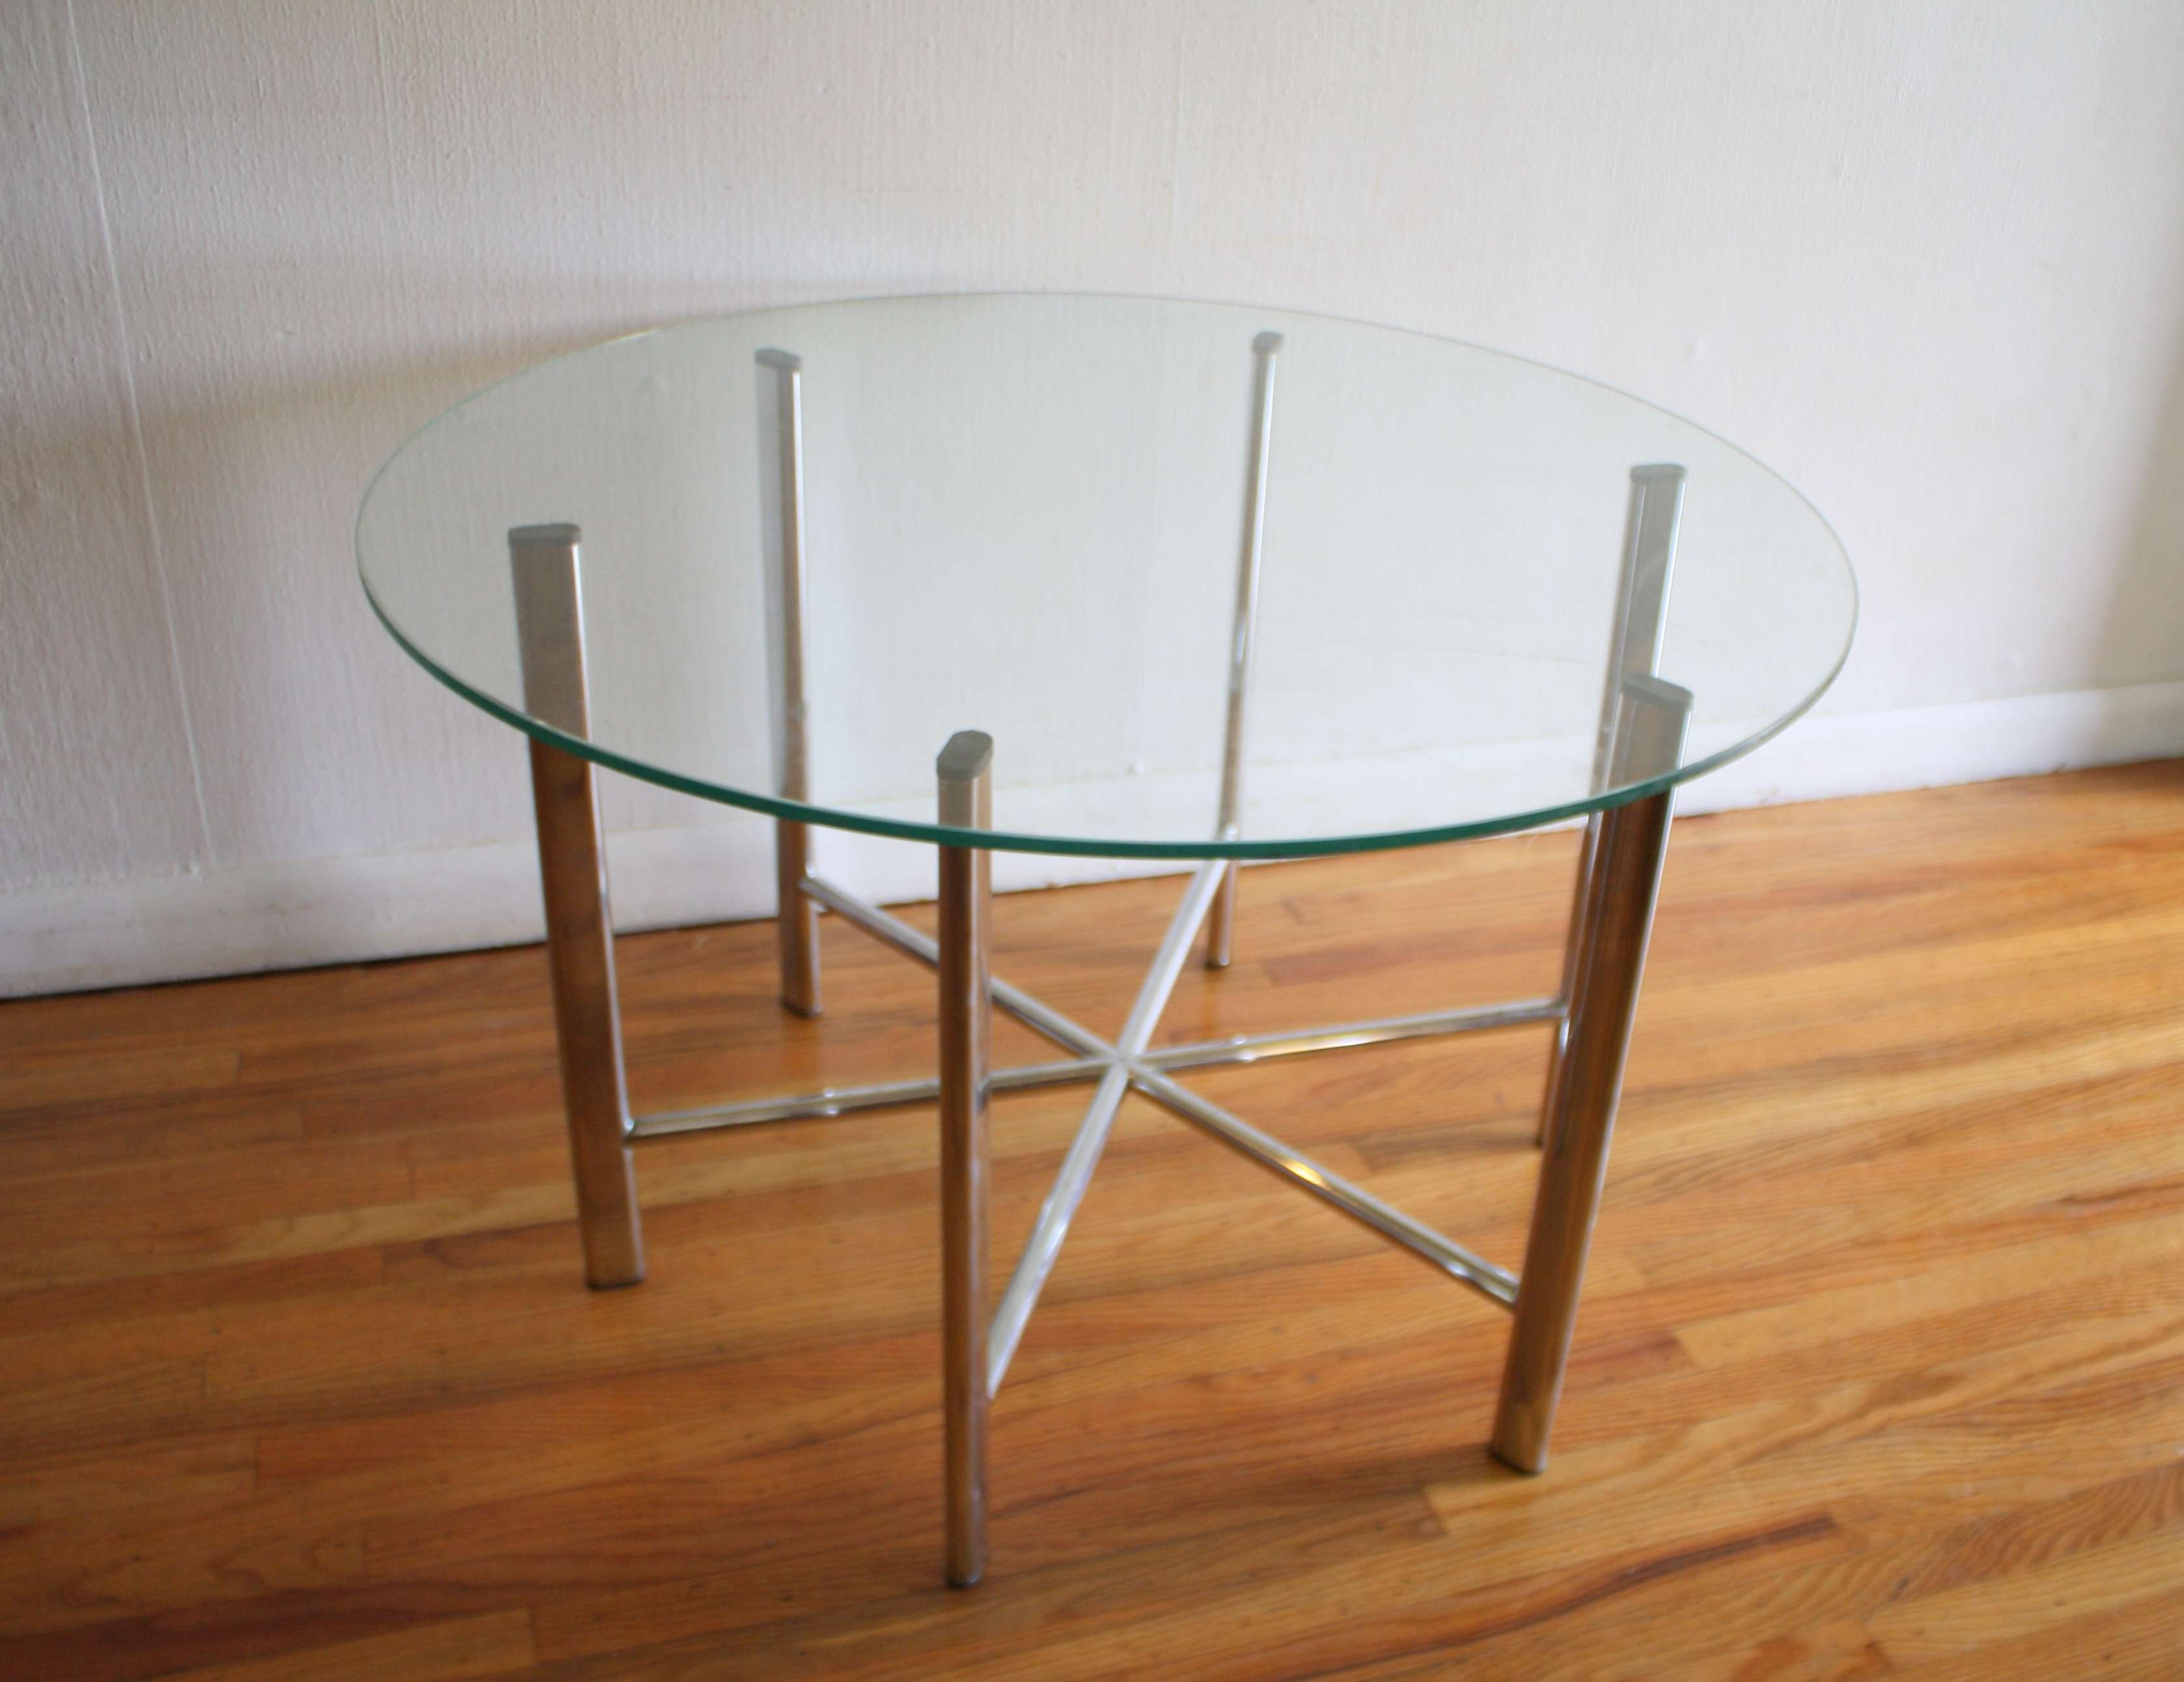 Amazing Elephant Glass Coffee Table – Mediasupload Regarding Best And Newest Elephant Glass Coffee Tables (View 4 of 20)